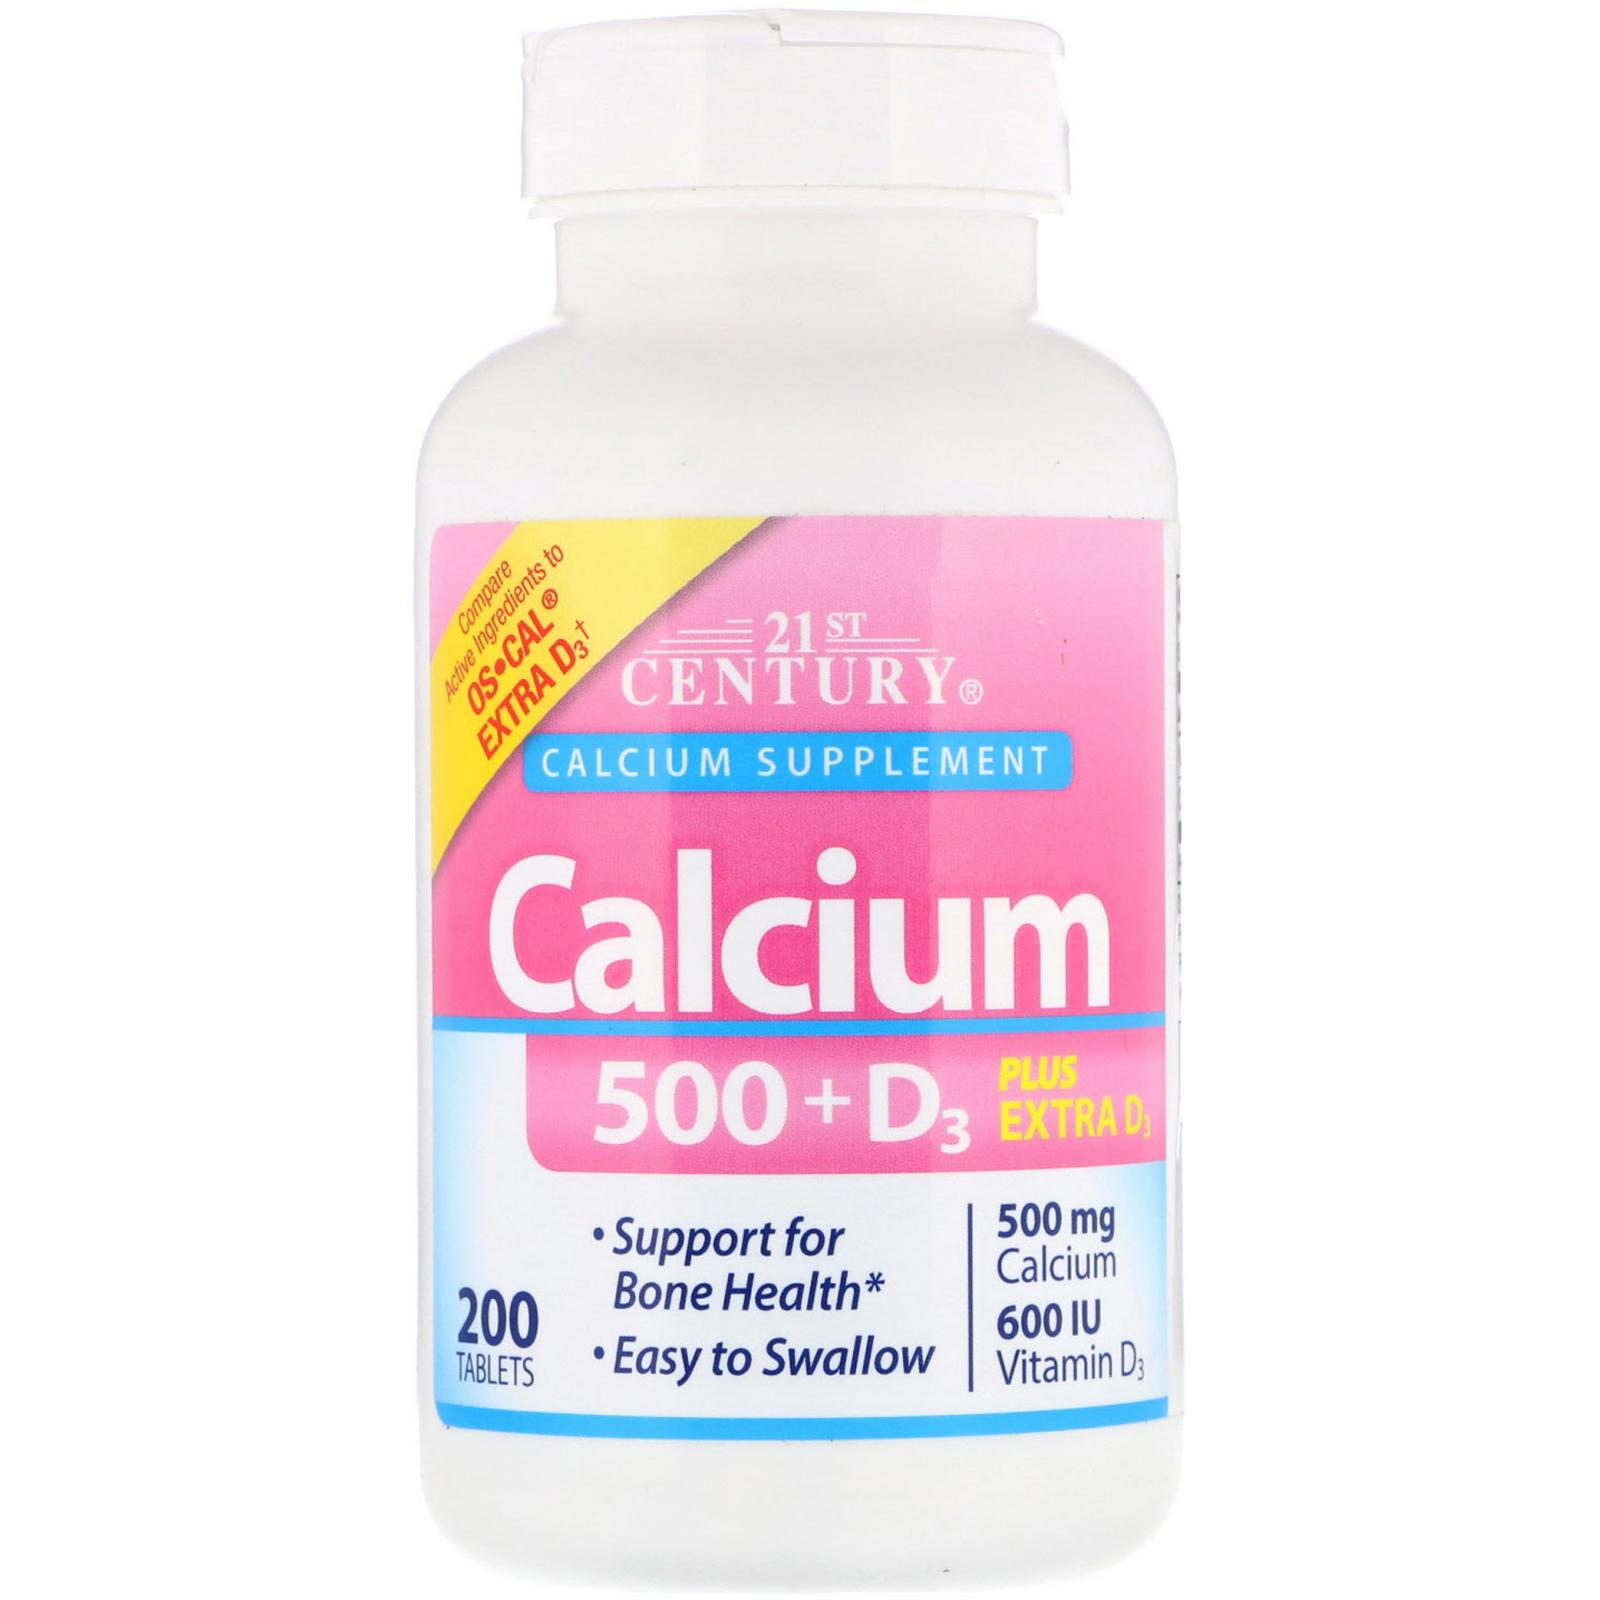 Кальций 500 + витамин Д3, 21st Century, Calcium Supplement + D3, 200 таблеток